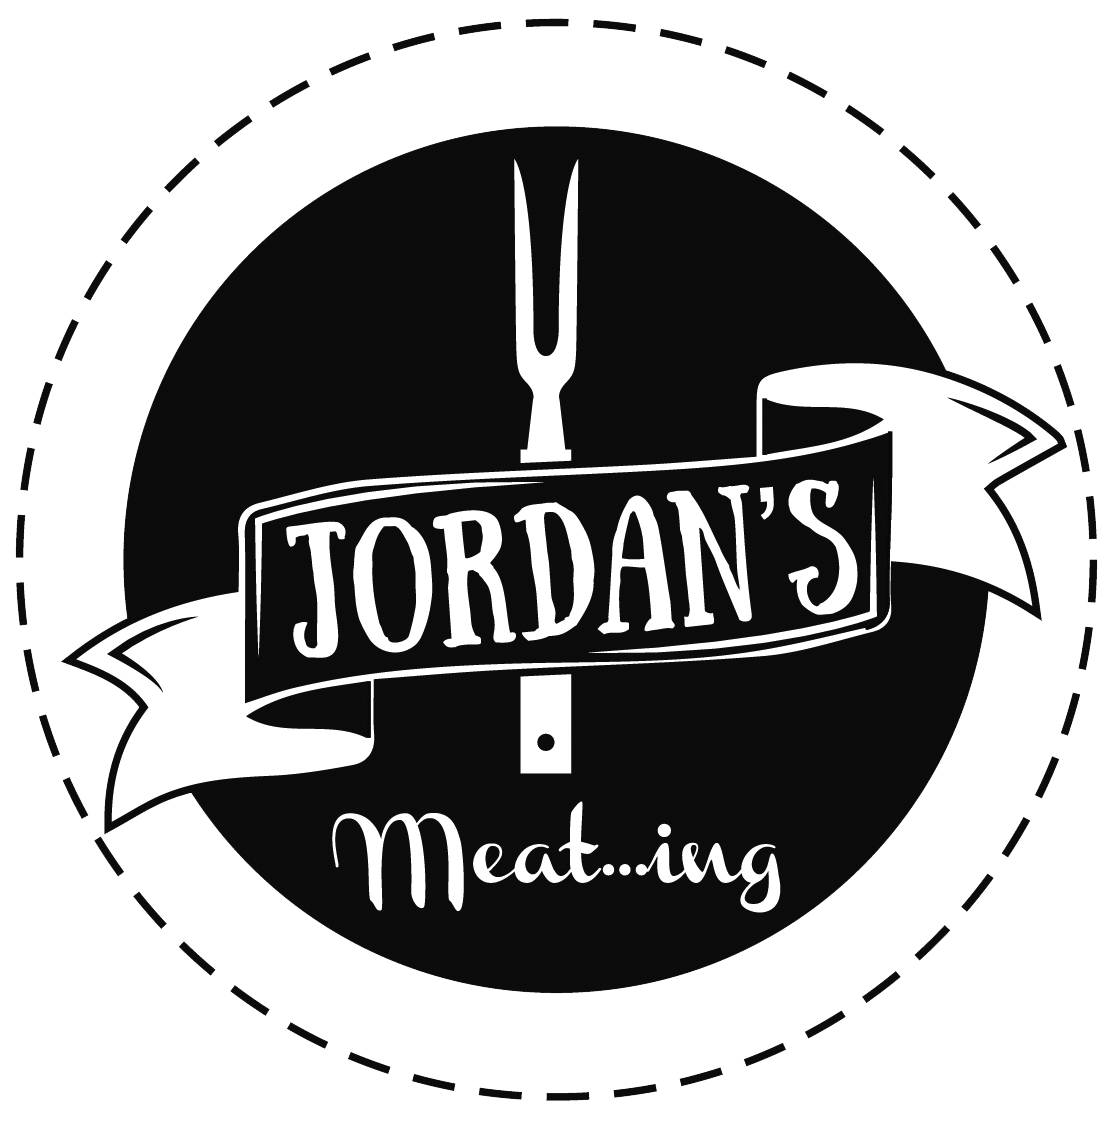 JORDAN'S MEAT...ING - THE BEST RESTAURANT  IN MILOS GREECE - JORDANSMEETING - JORDANS MILOS - JORDANS RESTAURANT IN MILOS APOLLONIA